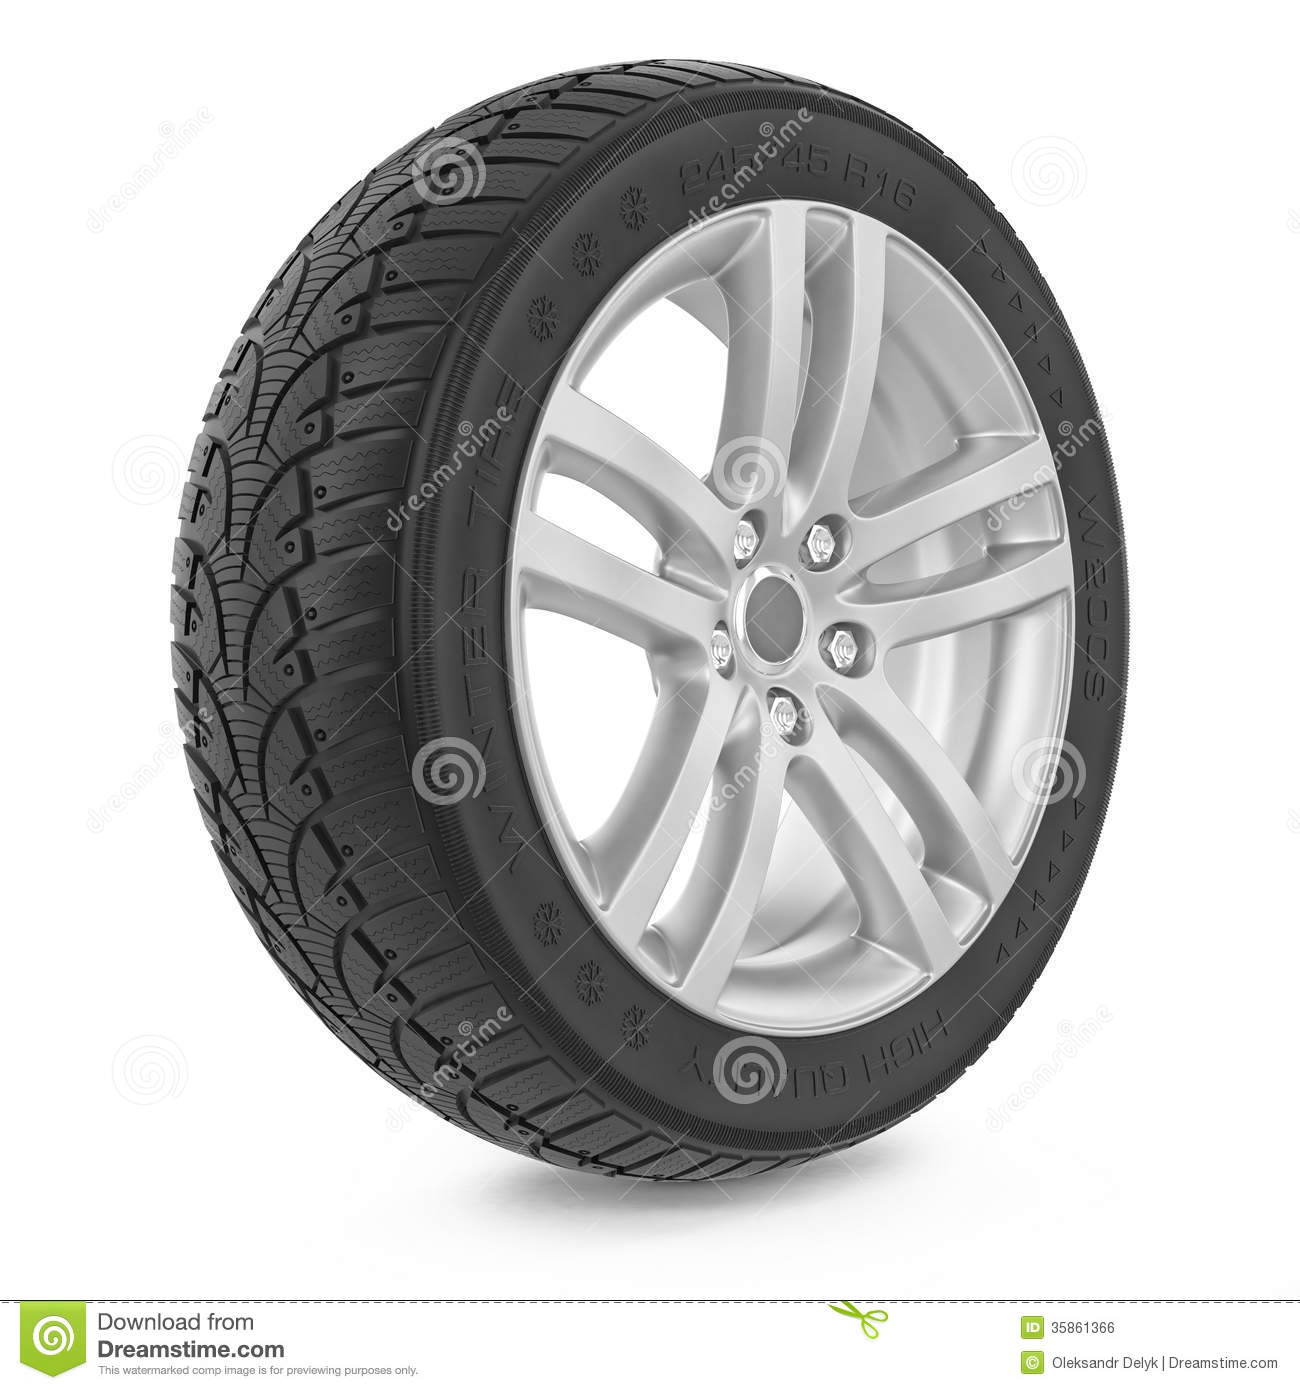 how to change winter tires on a car